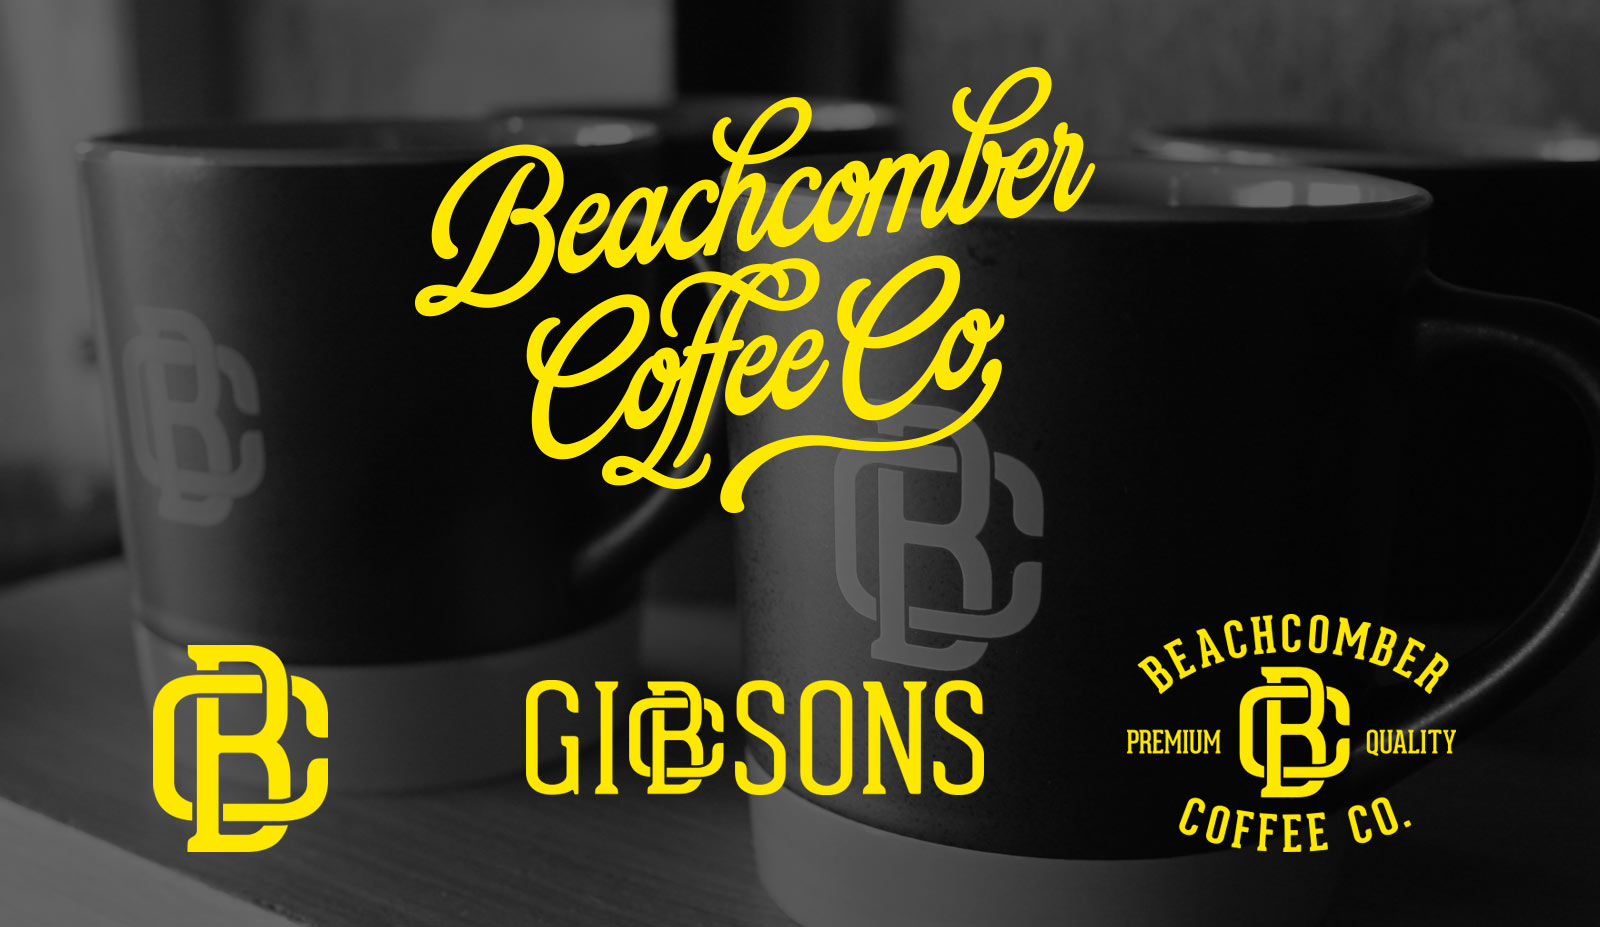 Beachcomber_coffee_logo_samples.jpg